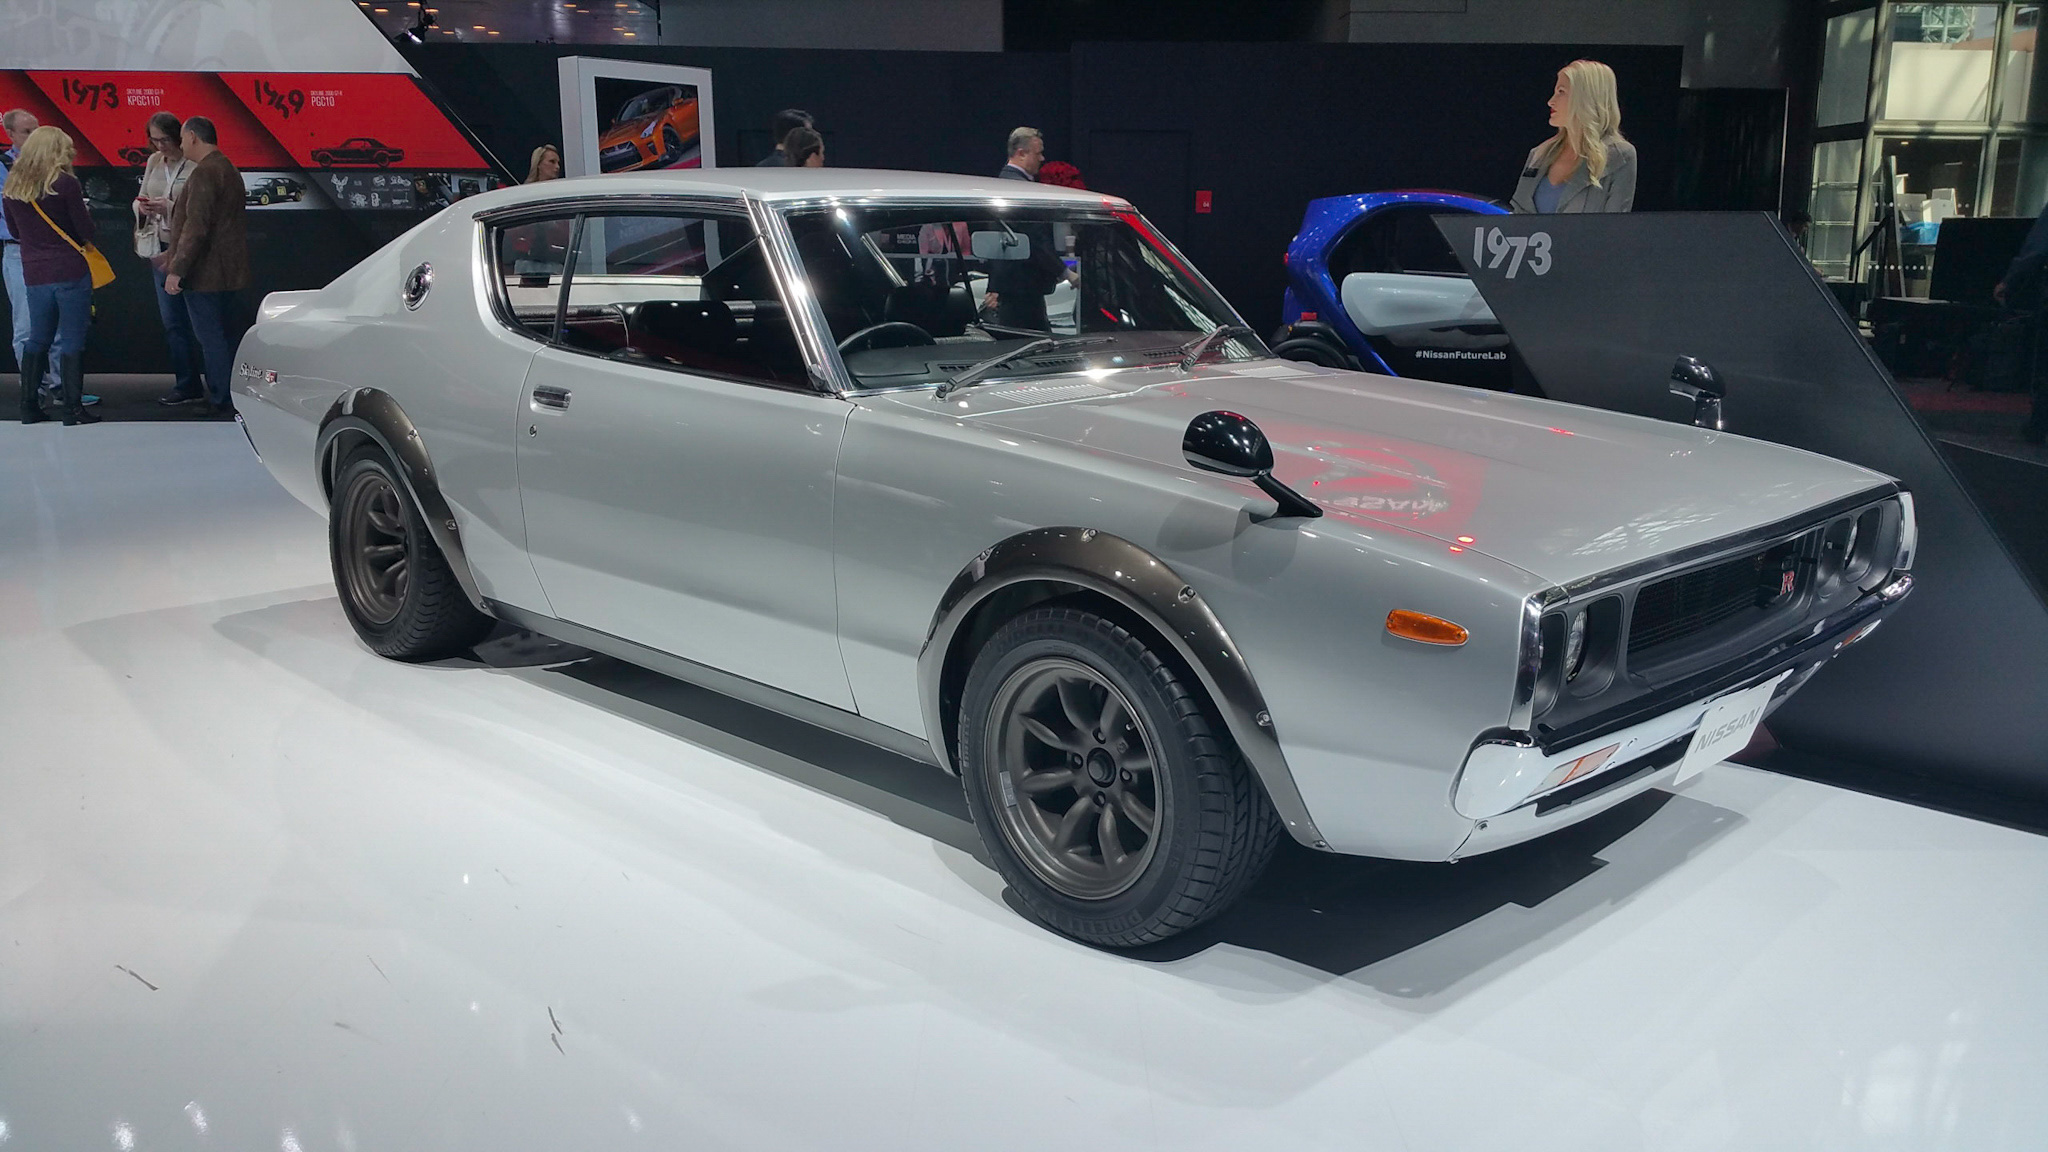 Restored and modified 1973 Nissan Skyline 2000 GT-R at the 2016 New York International Auto Show